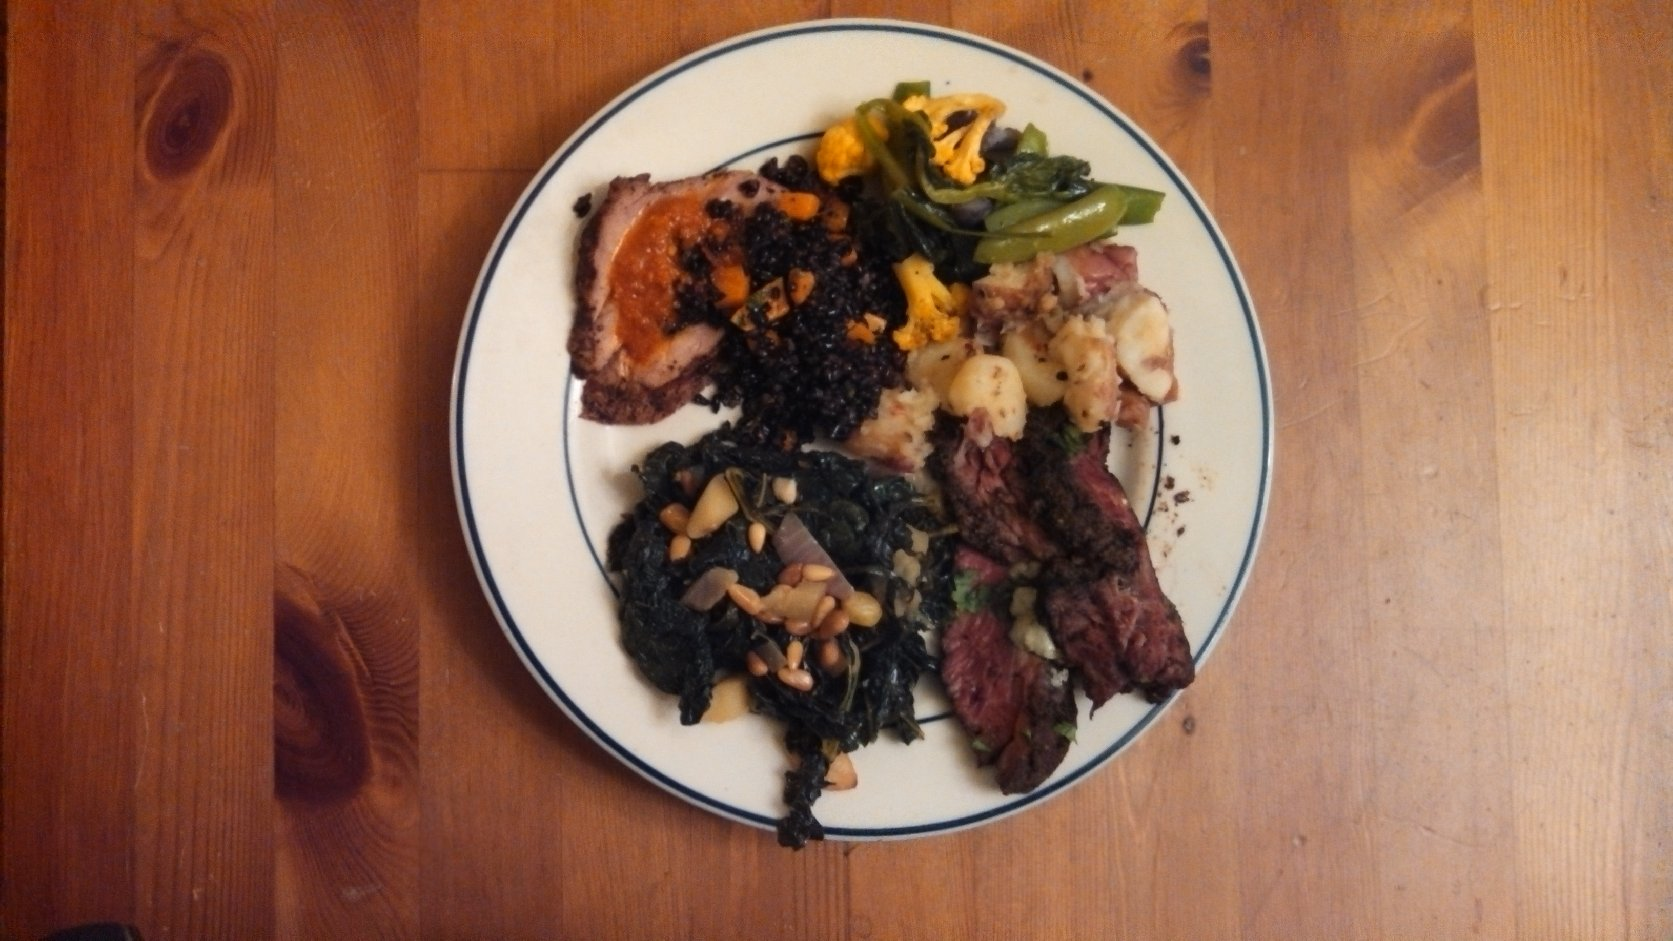 What dinner from Munchery looks like. Photo: Kelly O'Mara